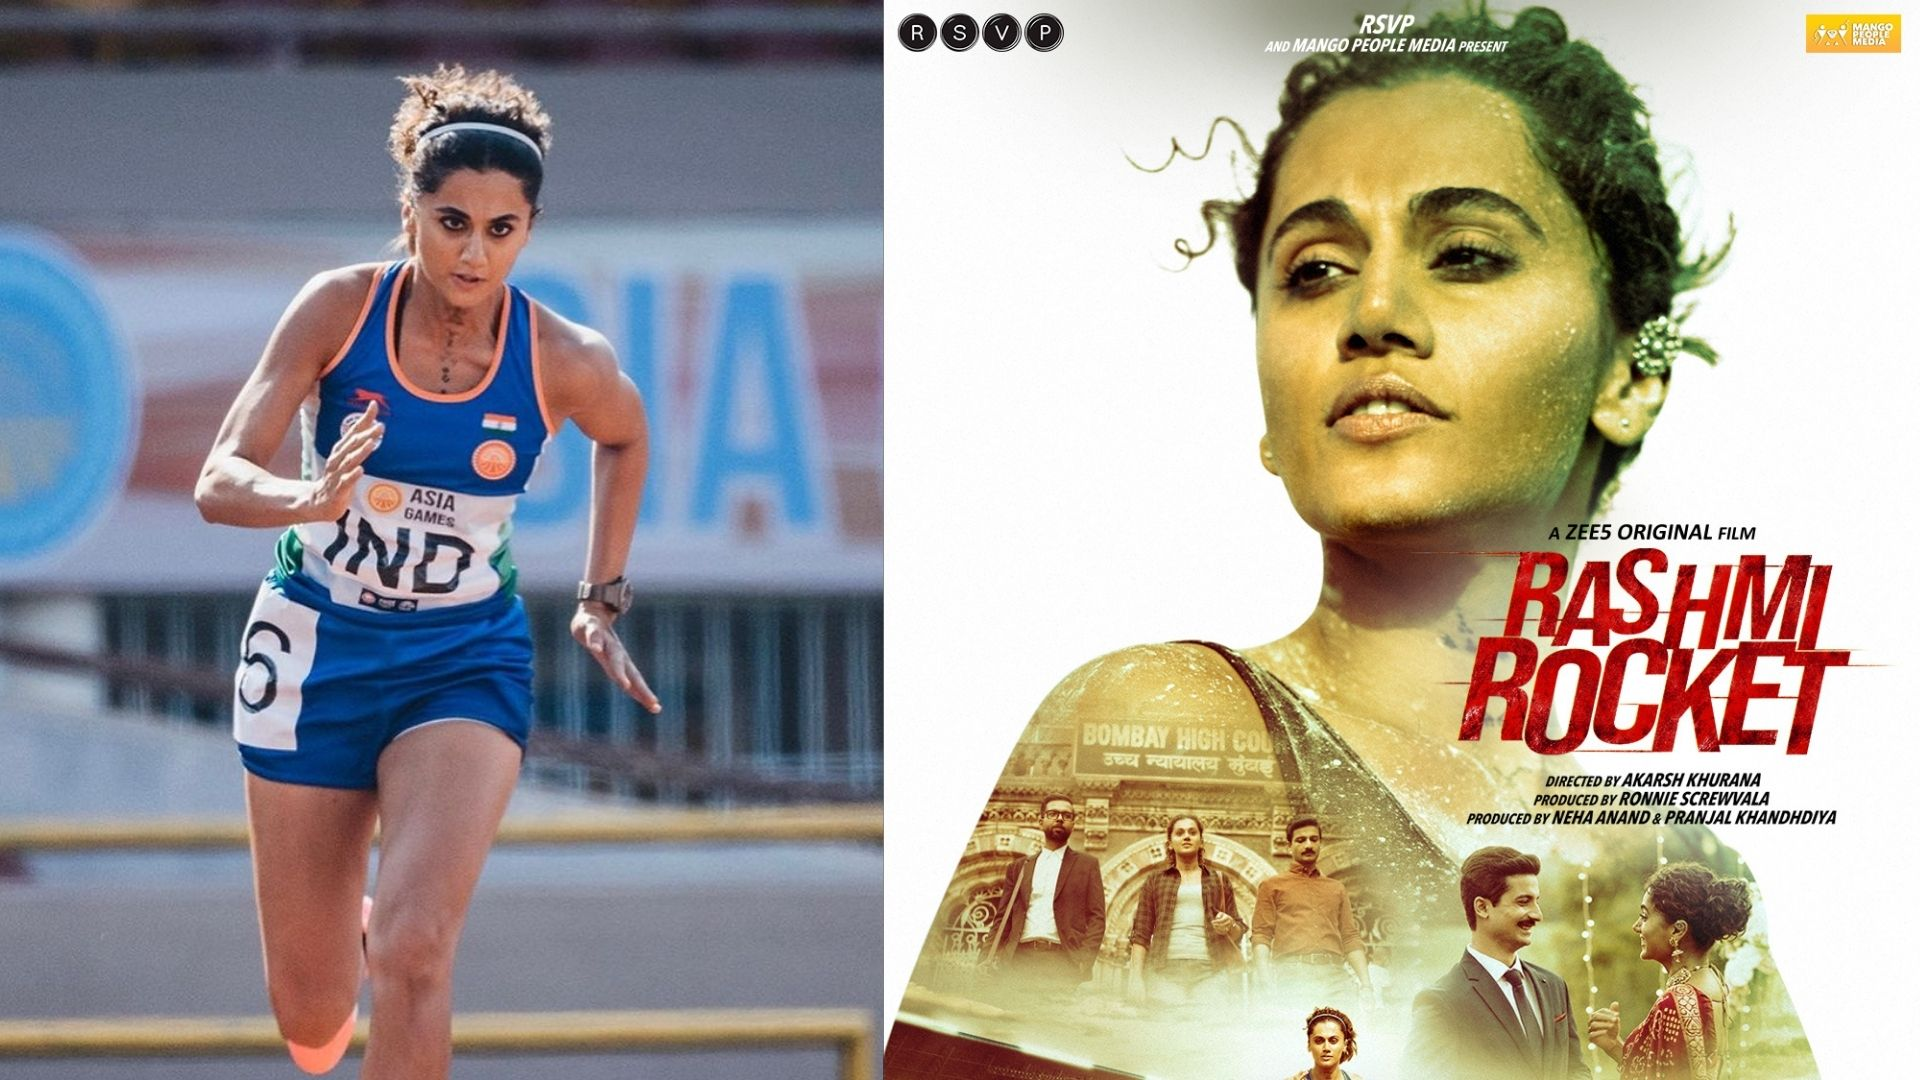 Rashmi Rocket: Taapsee Pannu Starrer Sports Drama Trends On Twitter; Netizens Lauds The Film And Actress For Outstanding Performance